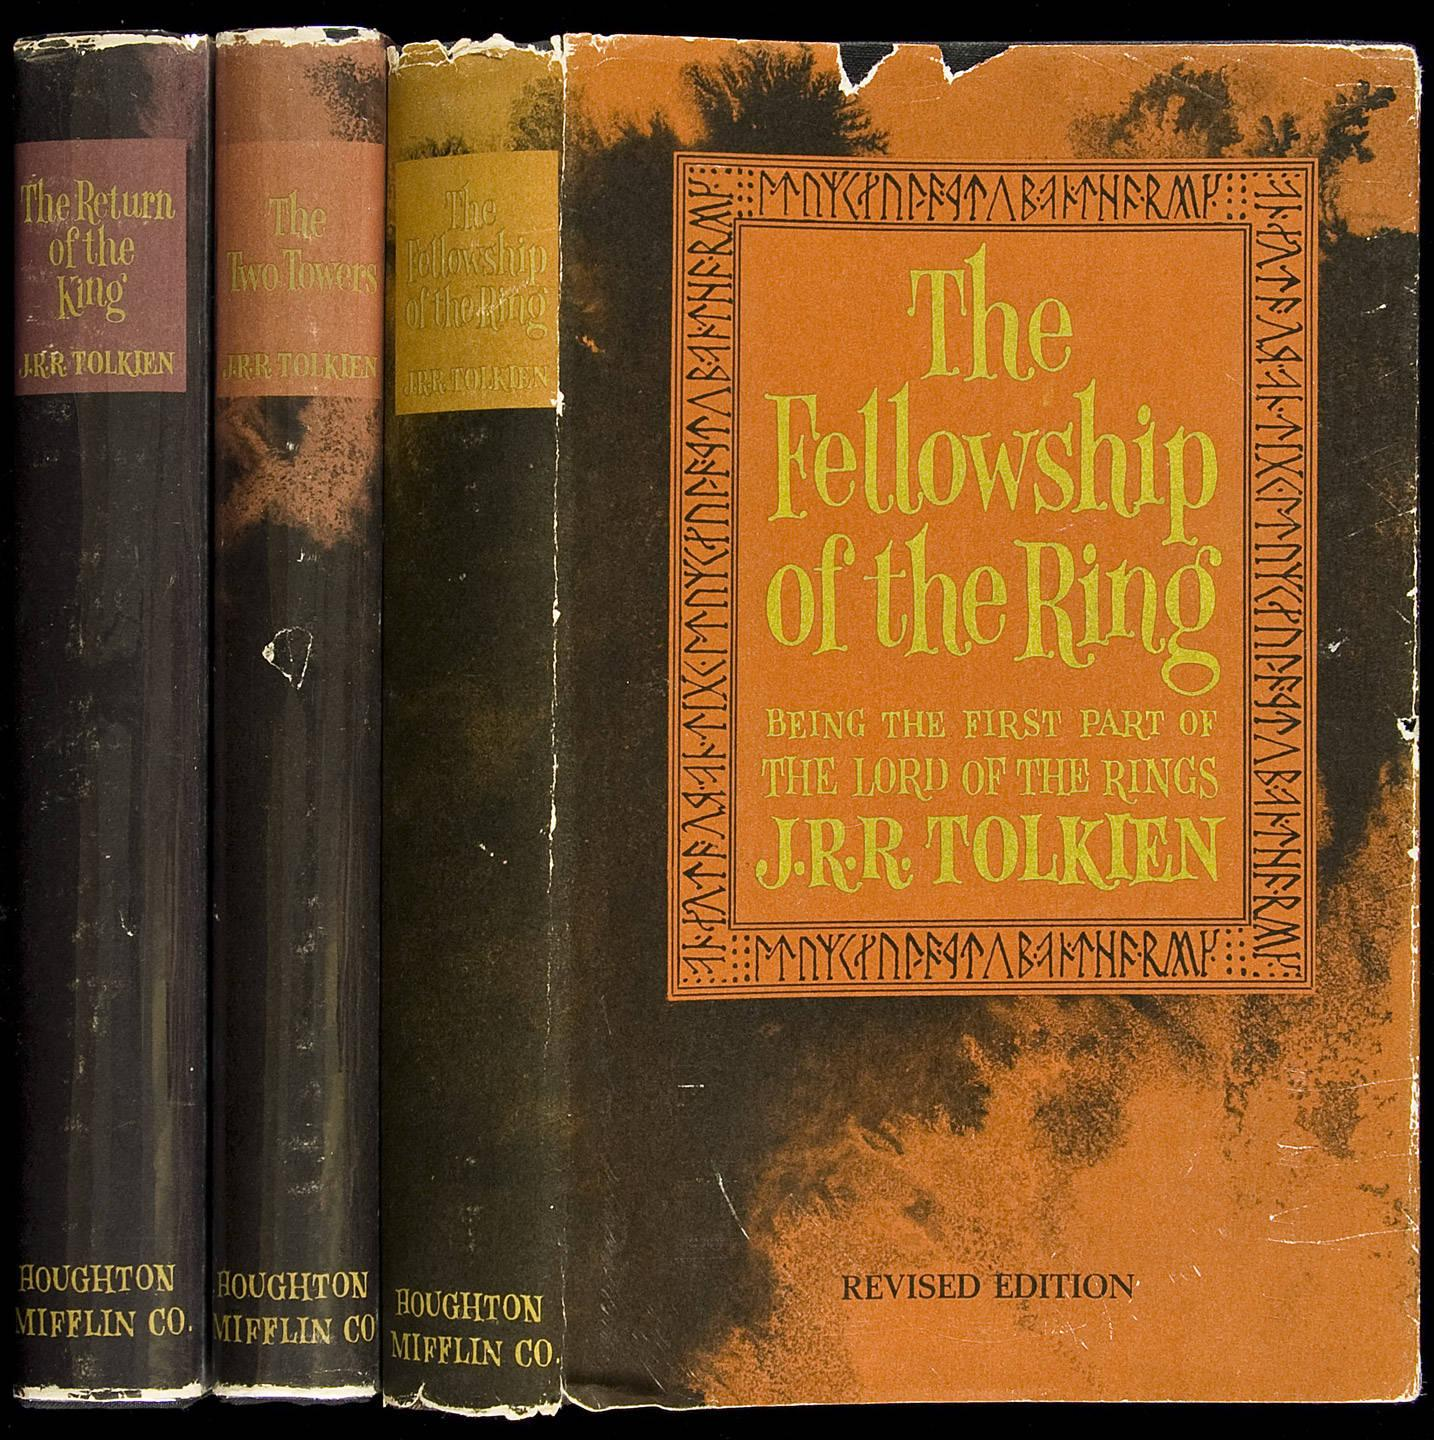 Research and Buy J R R  Tolkien First Editions  Limited Editions     One of the most collectible authors today  the father of the epic fantasy   Professor J R R  Tolkien is quite possibly one of the best places to start  should